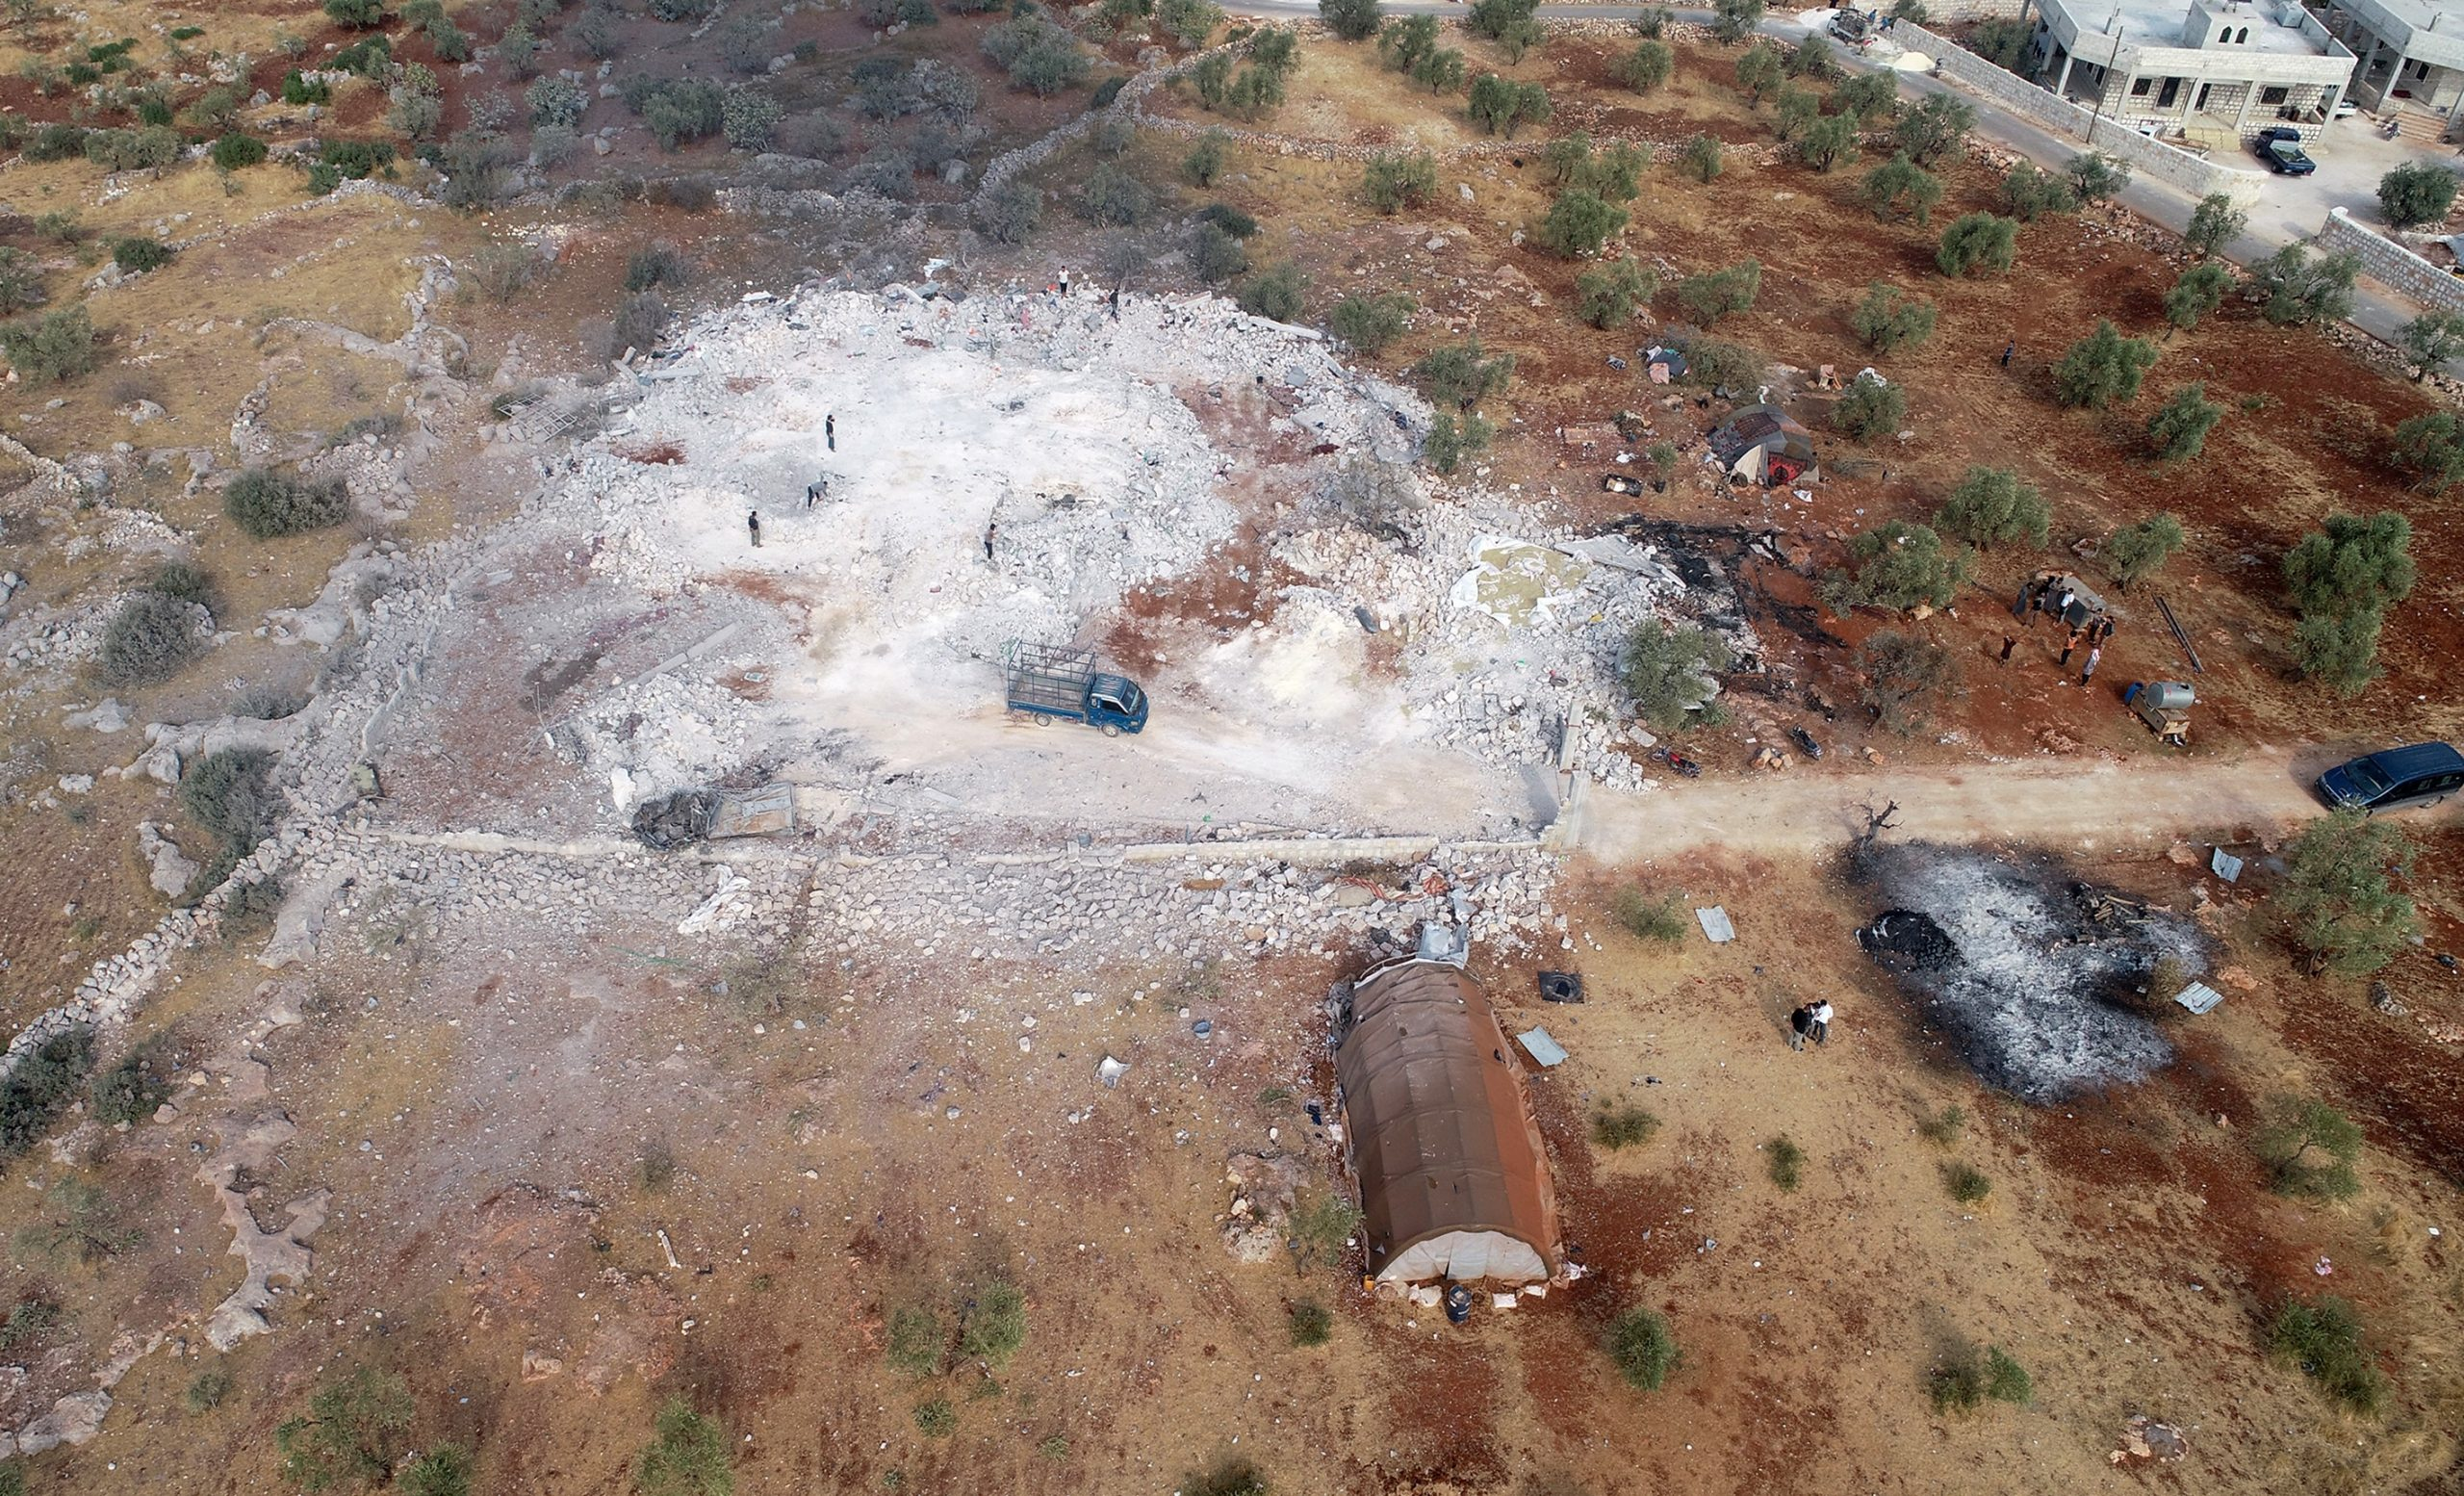 A drone photo shows an aerial view of operation area where ISIS leader Abu Bakr al-Baghdadi died on October 28, 2019 in Idlib, Syria .